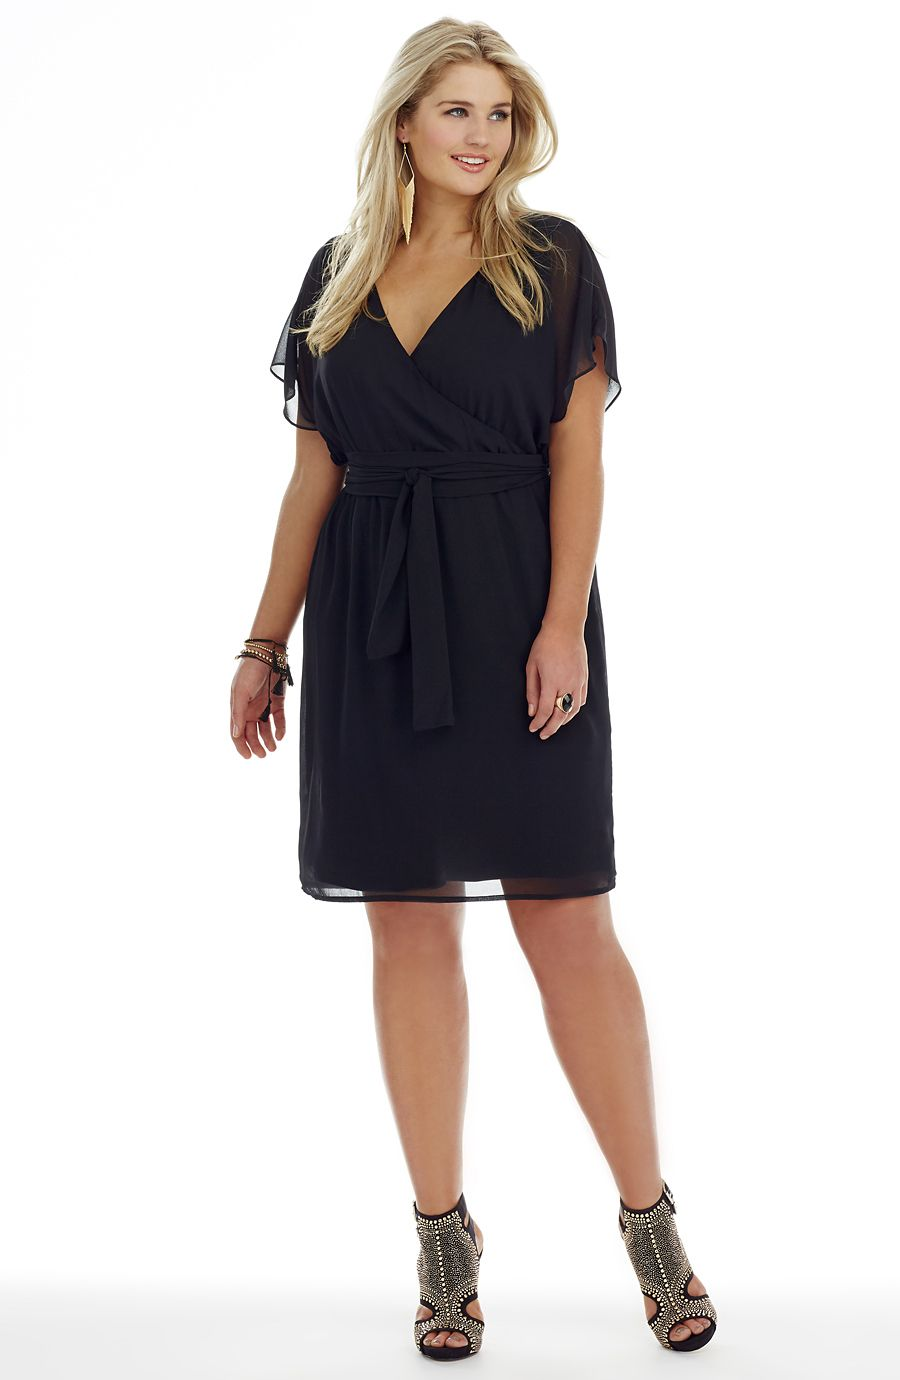 Georgette crossover dress. This dress can be worn two ways!  One side of the dress has a cross over front.  Switch it round and you have a dress with a keyhole front.  The dress has loose sheer sleeves and is elasticized at the waist.